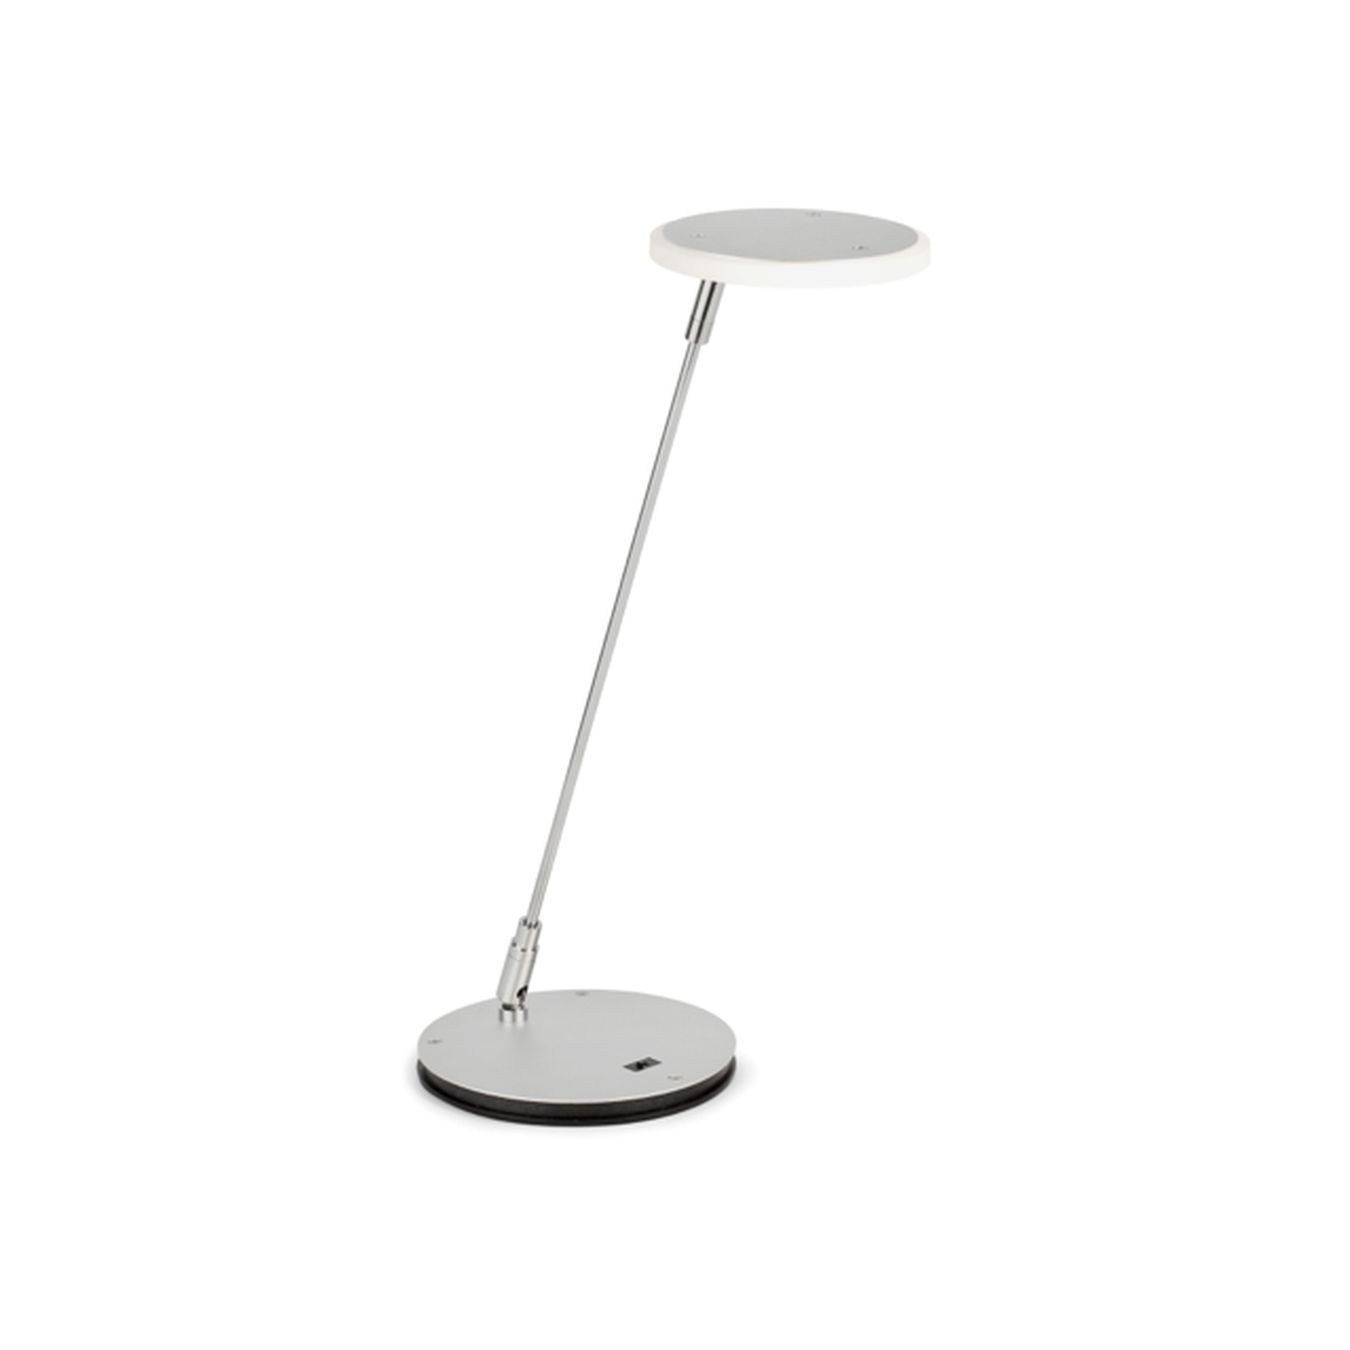 Lampara Led Escritorio Lámpara De Mesa Escritorio Con Led Iluminacion Lamparas